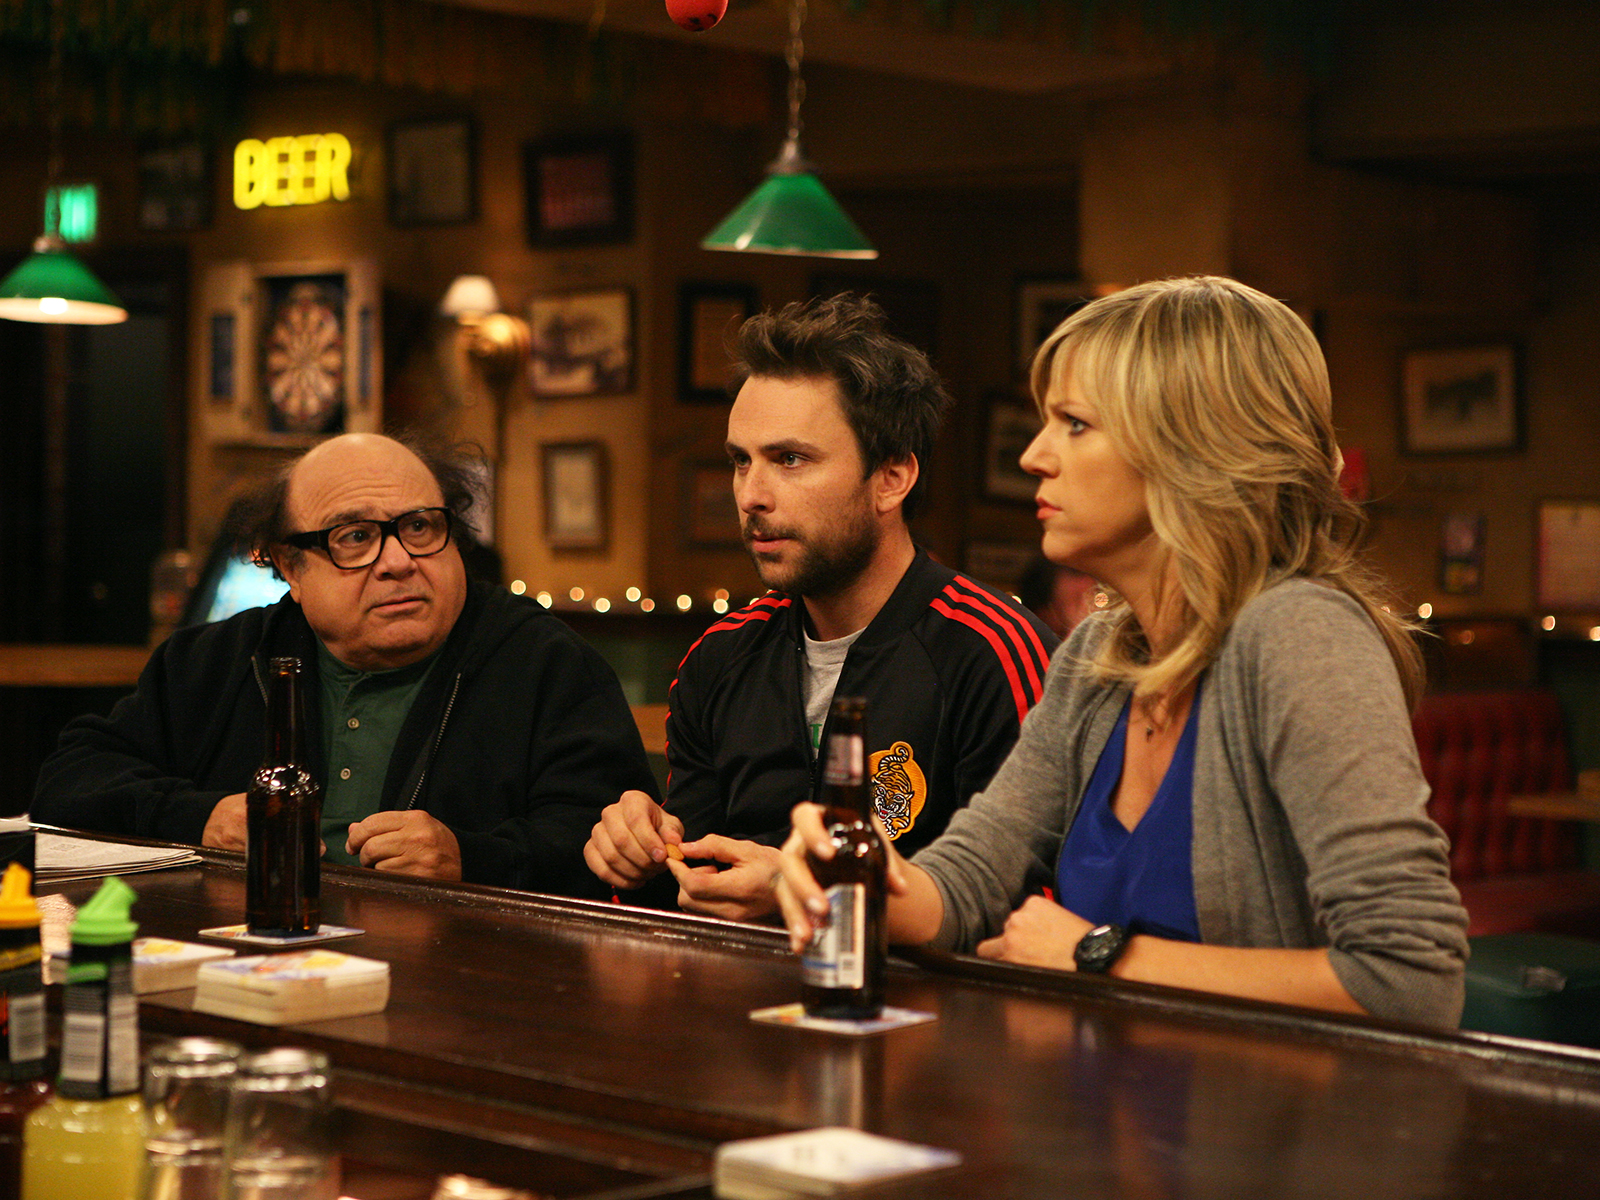 An 'Always Sunny In Philadelphia' Paddy's Pub Pop-Up Is Coming to Chicago for St. Patrick's Day